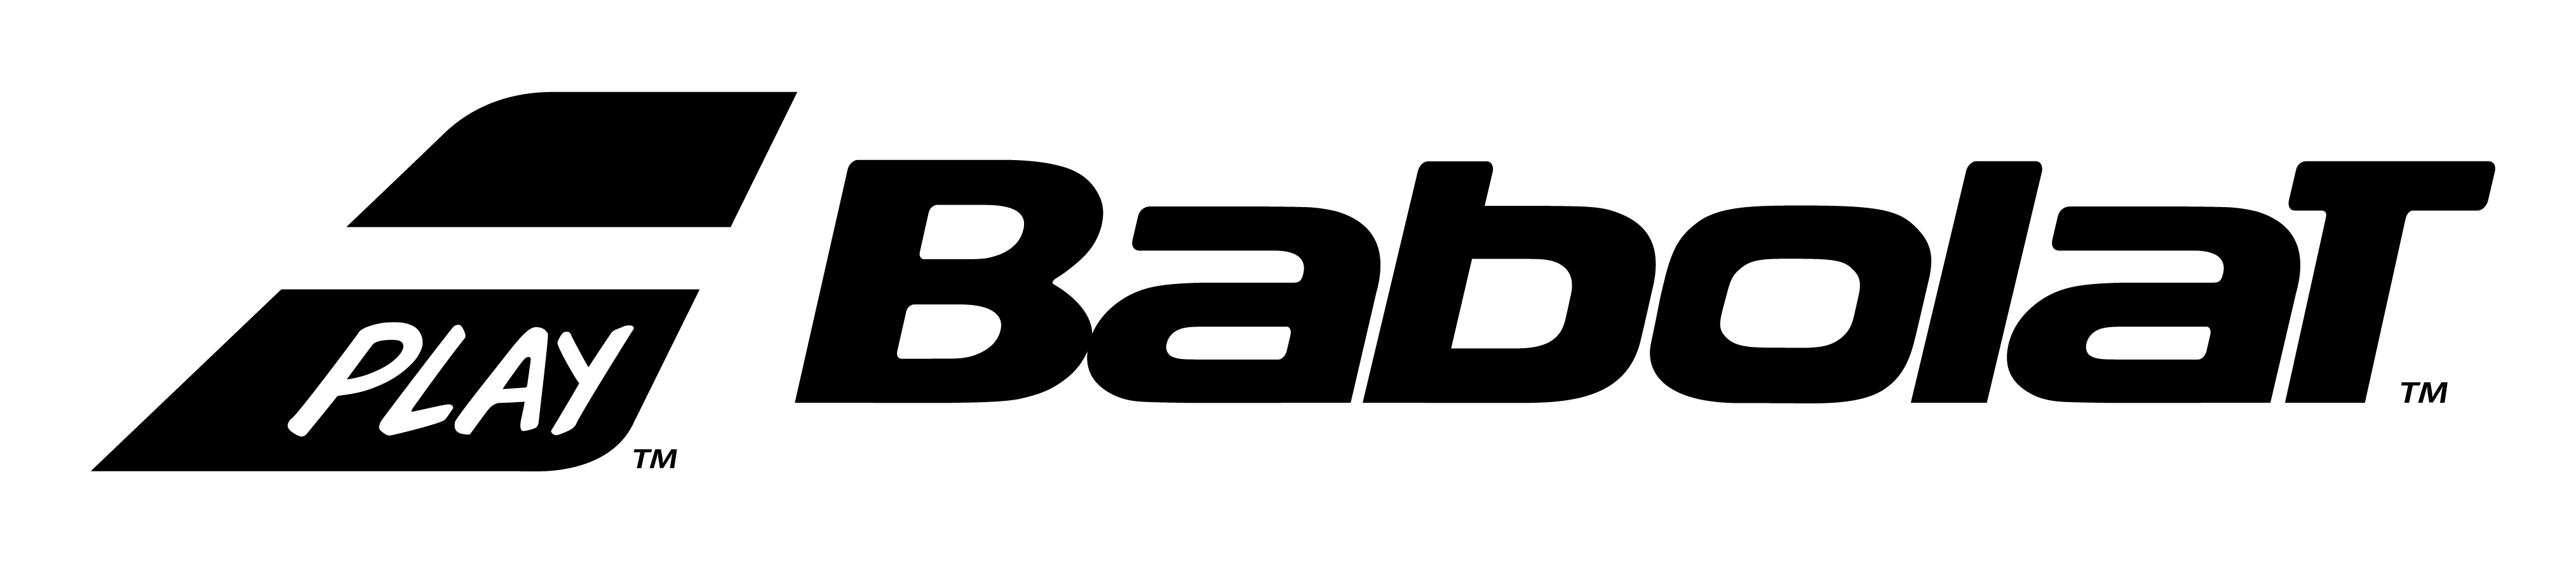 https://www.groupezebra.com/wp-content/uploads/2019/09/babolat-1.png